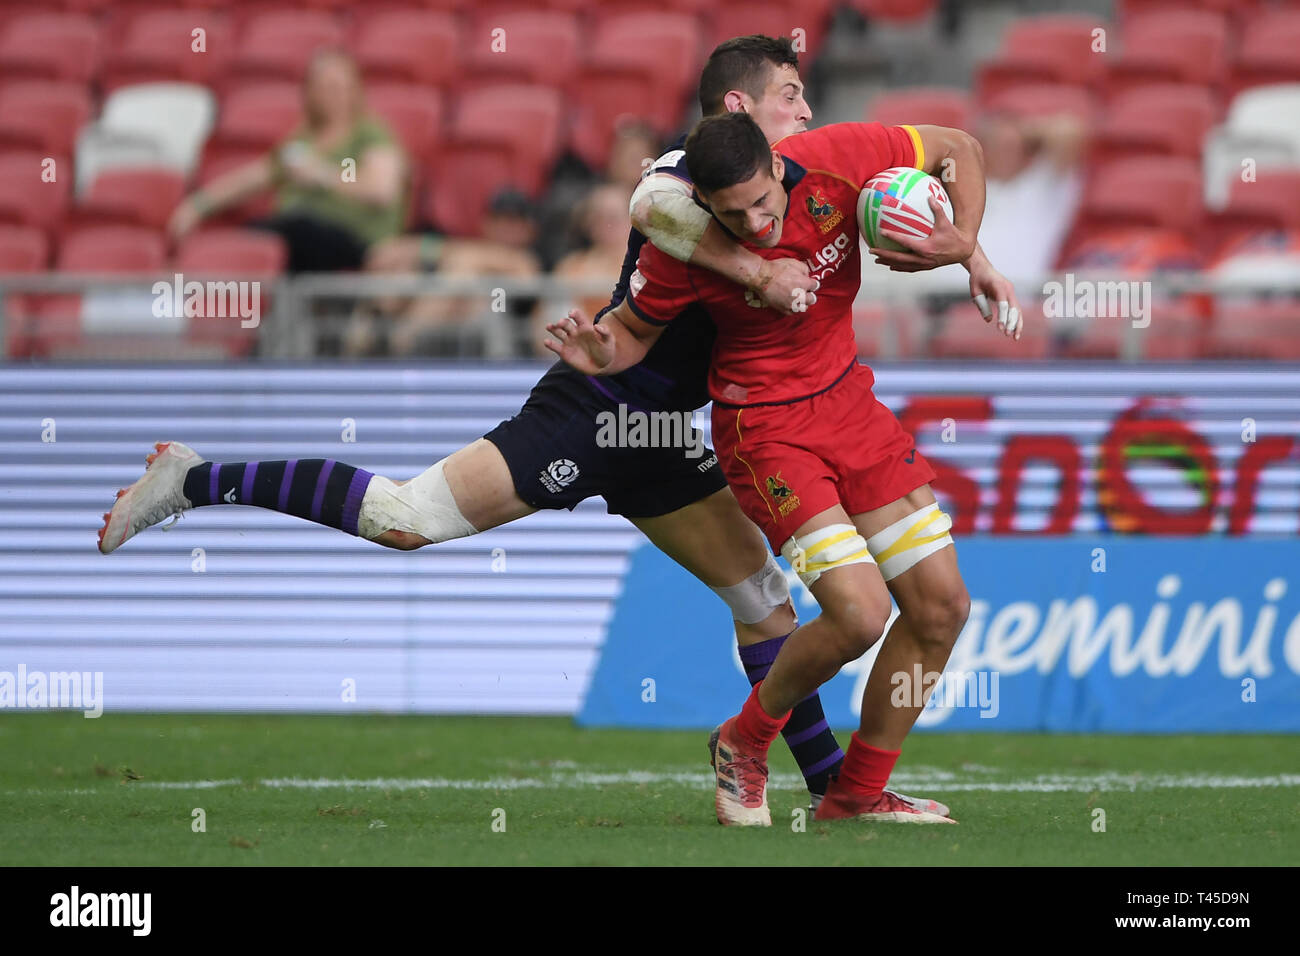 Singapore. 14th Apr, 2019. (L-F) Robbie Fergusson (SCL) - Tobias Sainz-Trapaga (ESP), APR 14, 2019 - in action during Challenge Trophy QF1 HSBC Singapore Rugby 7s 2019 Credit: Aflo Co. Ltd./Alamy Live News - Stock Image